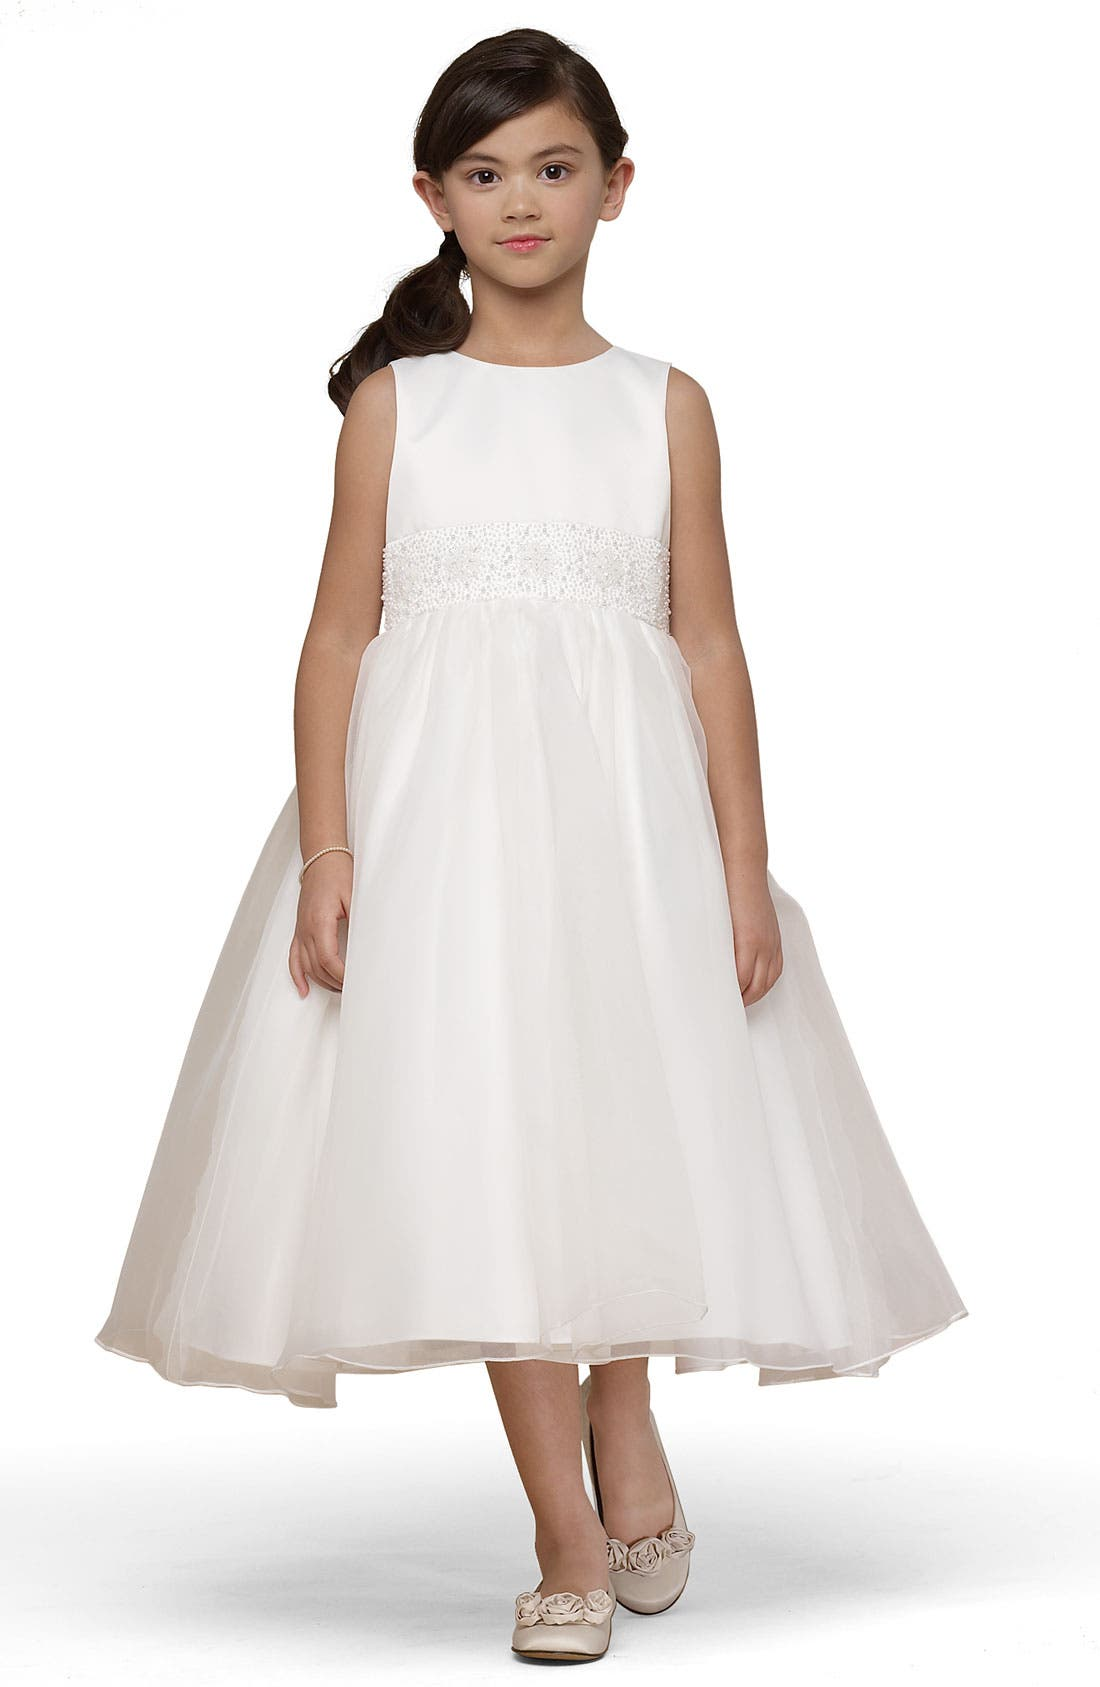 Main Image - Us Angels Beaded Satin Sleeveless Dress (Toddler, Little Girls & Big Girls)